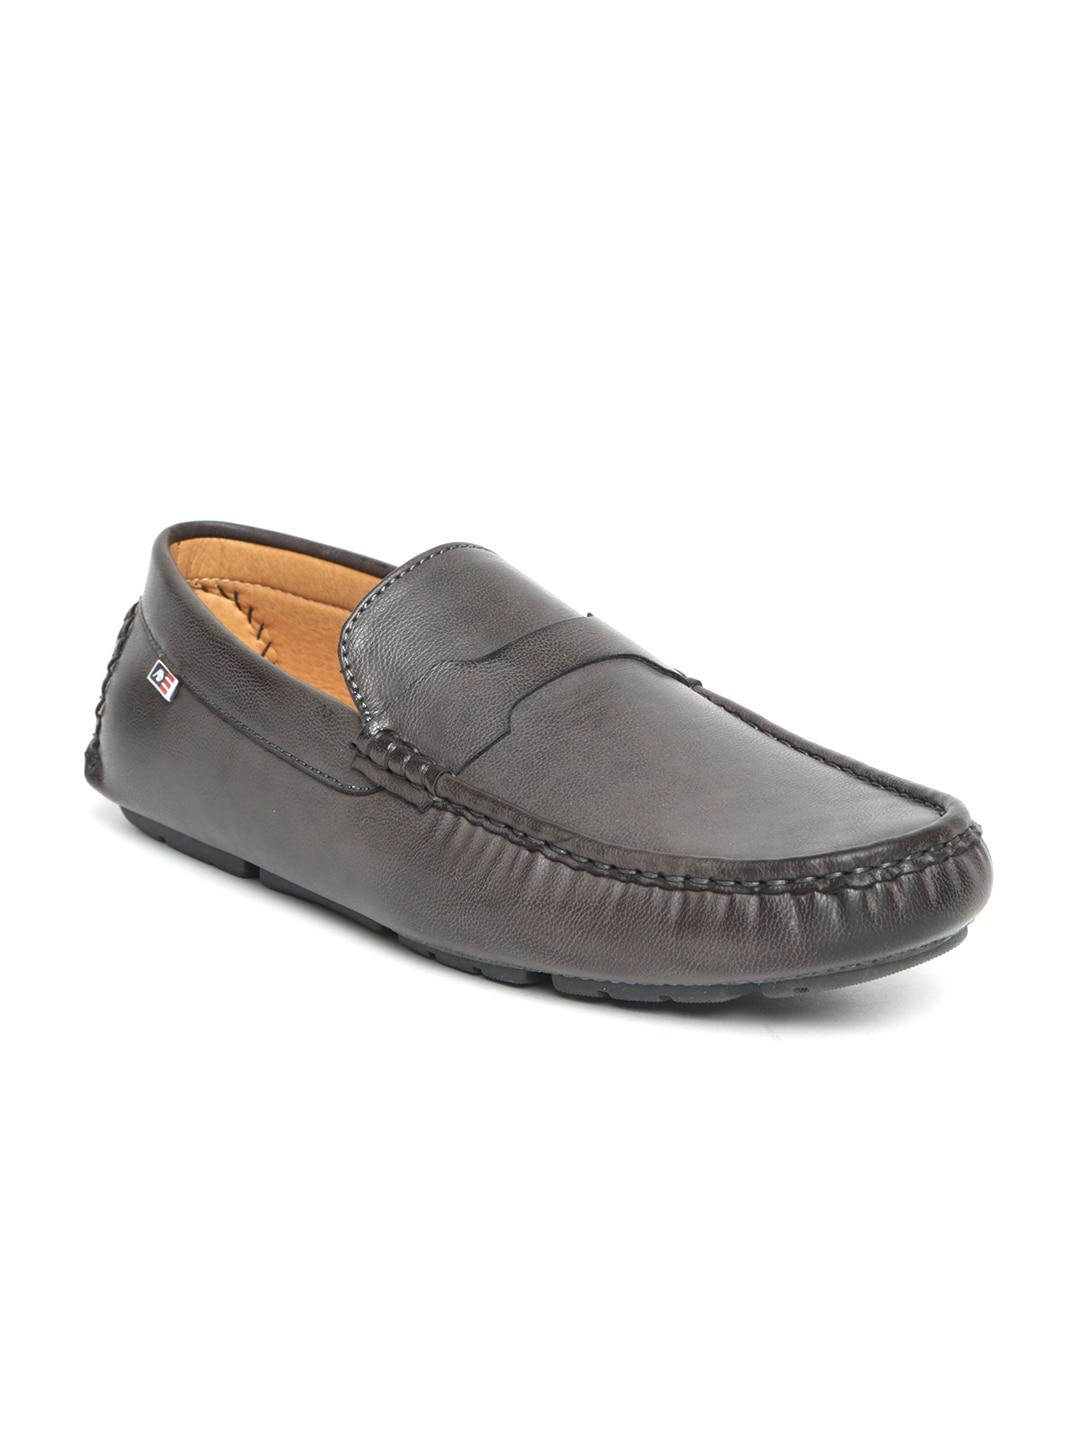 66e9ed796a5 Buy Arrow Men Coffee Brown Leather Tassel Loafers - Casual Shoes for ...